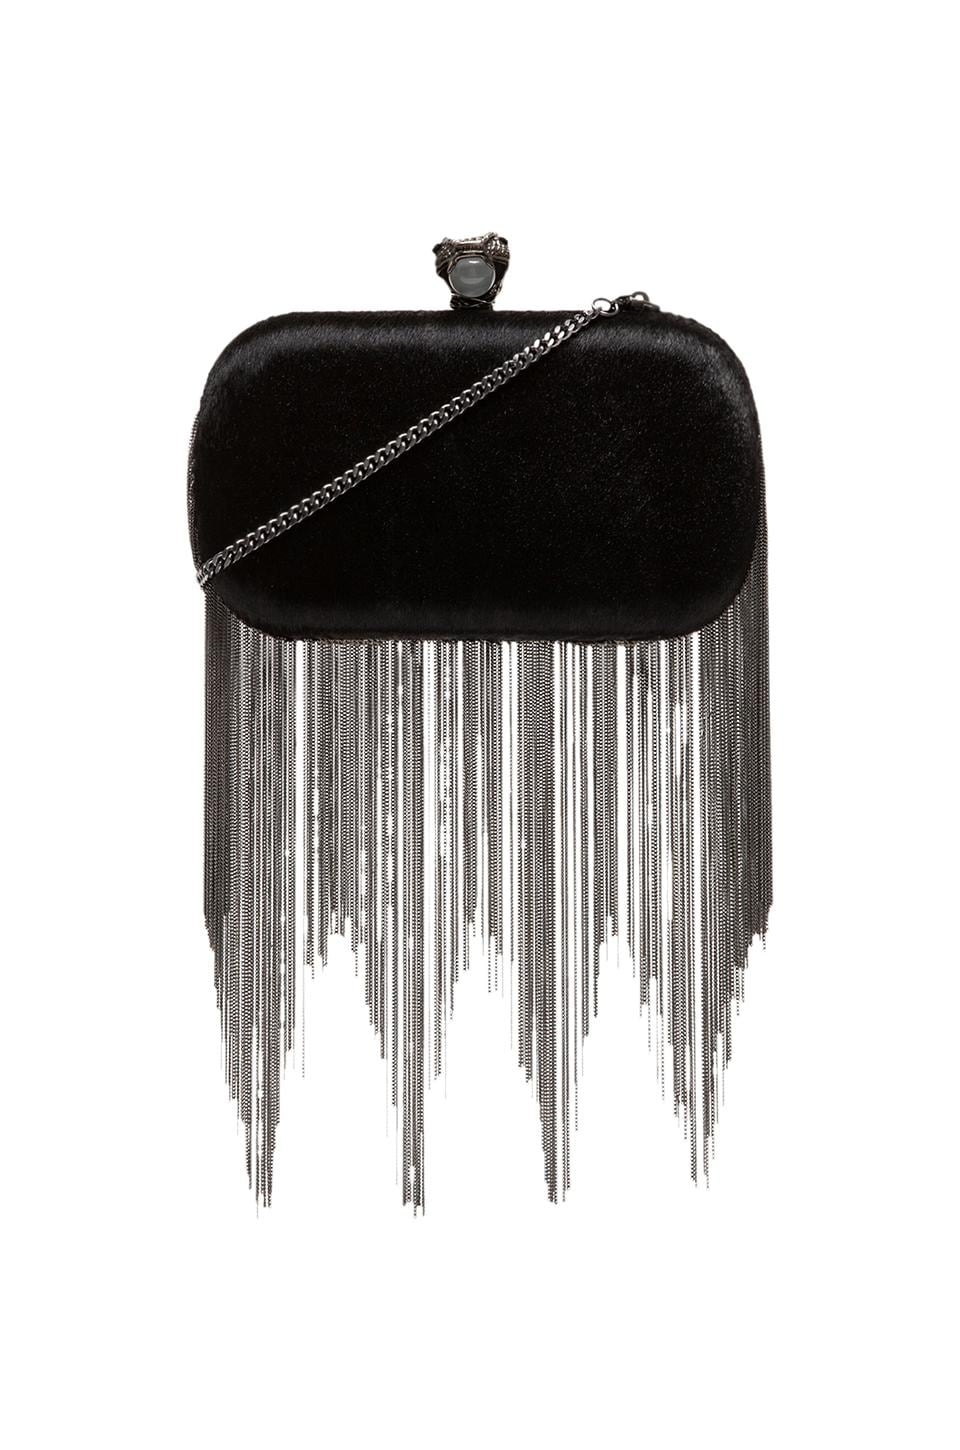 House of Harlow Jude Clutch in Bordeaux Haircalf